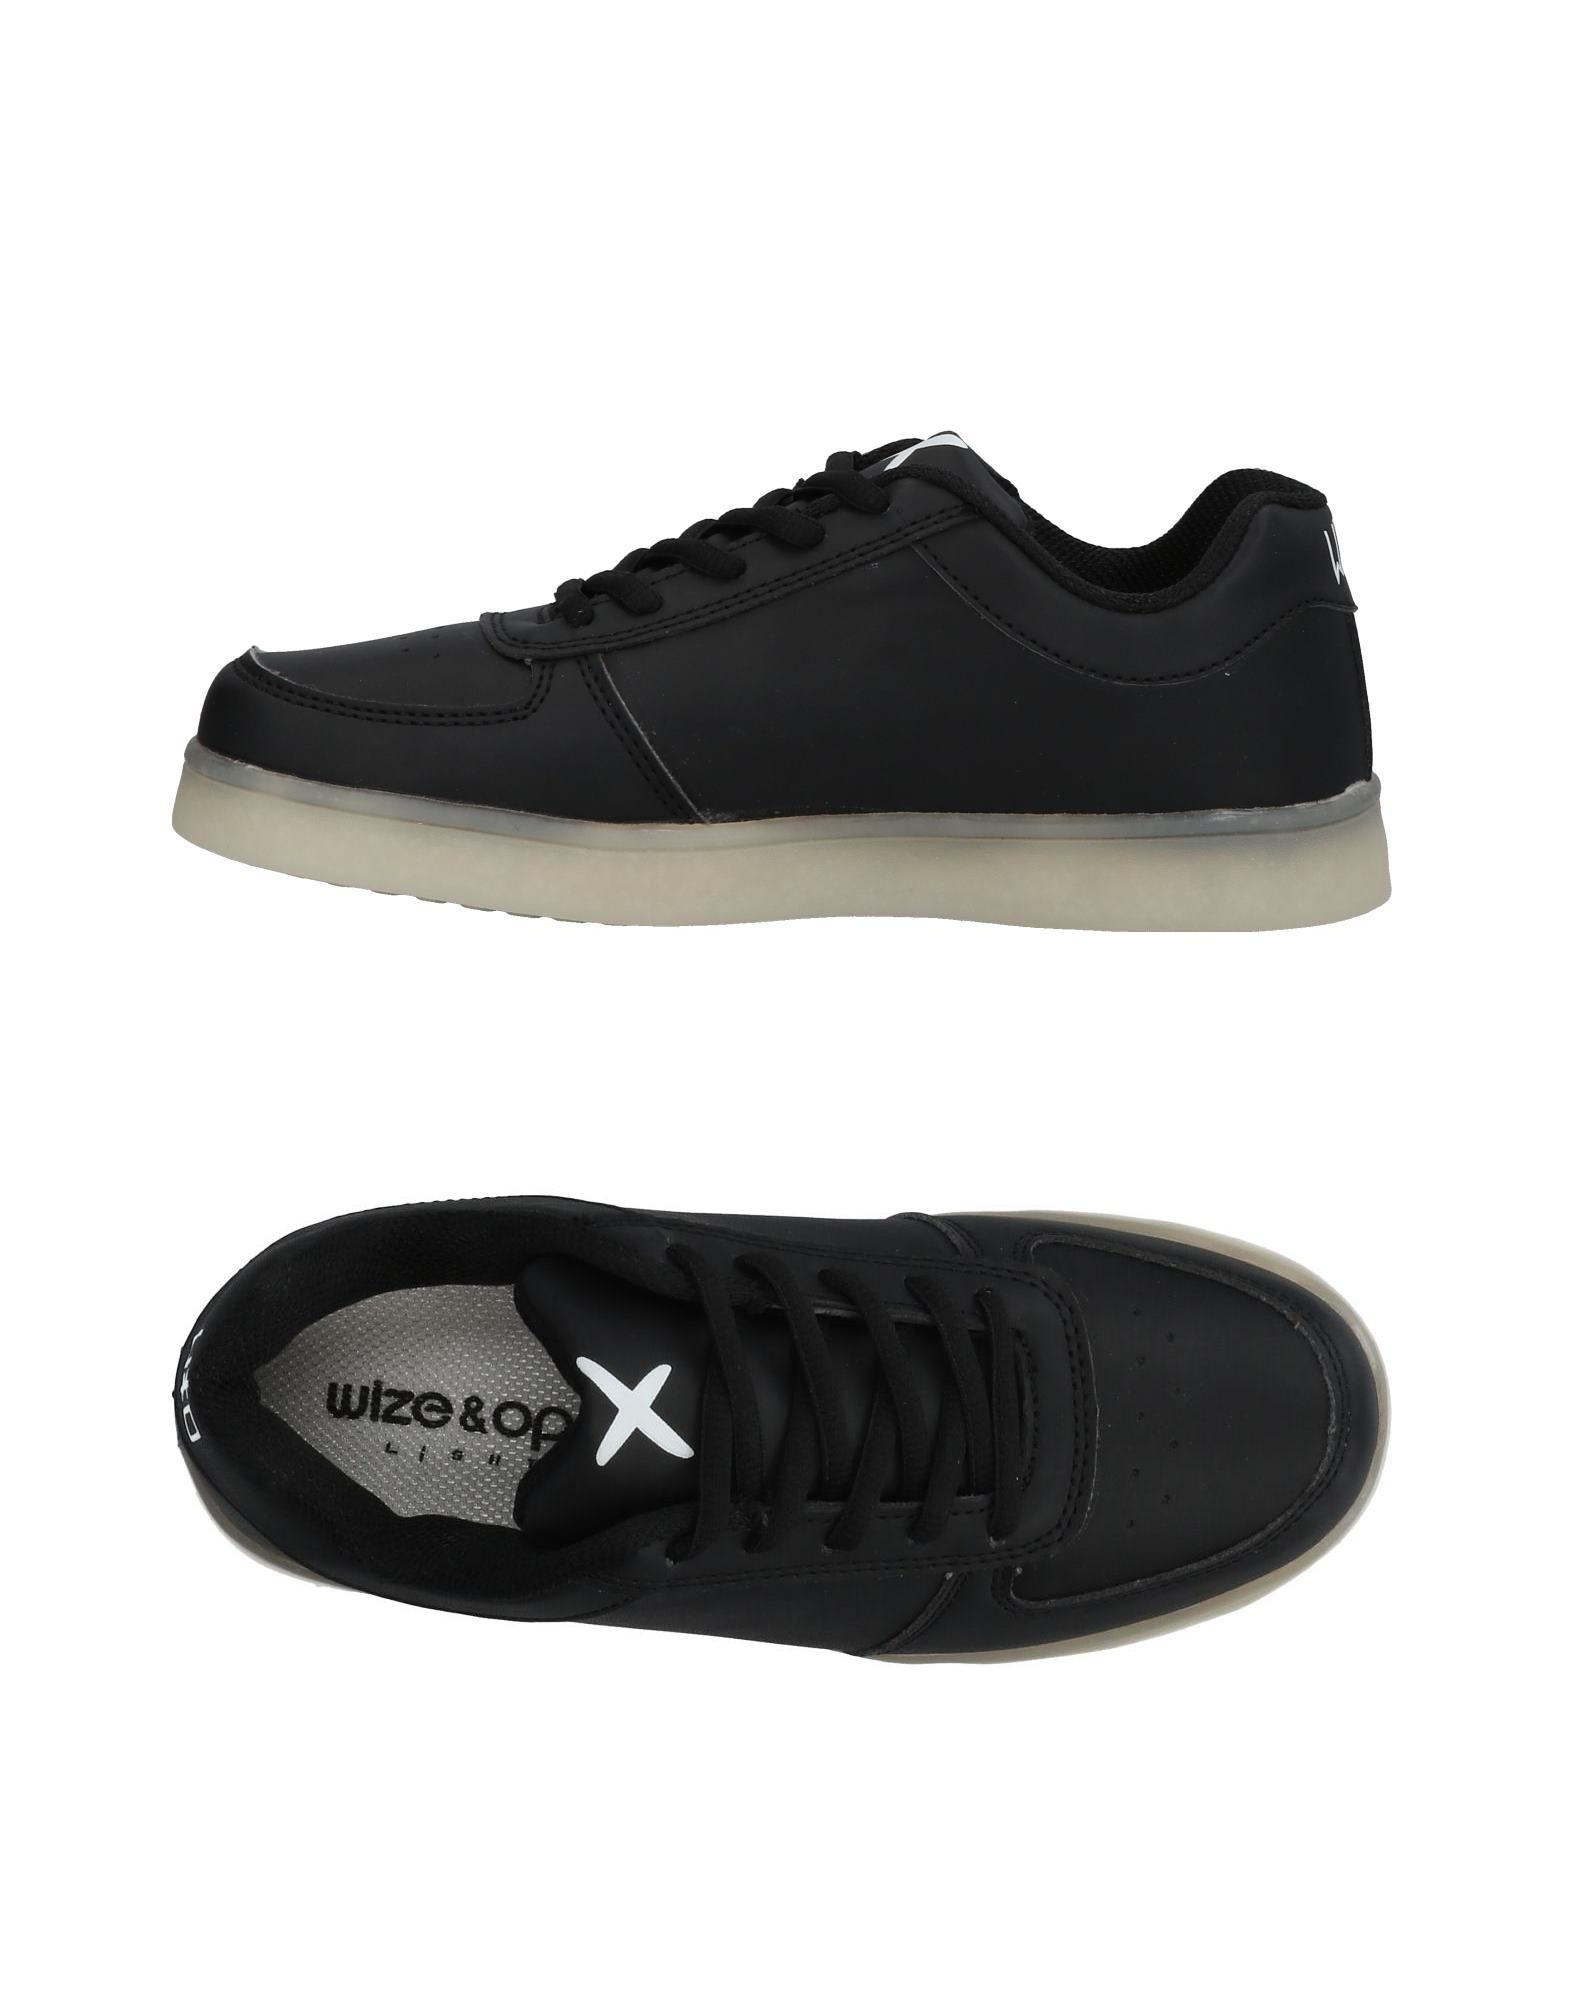 Sneakers Wize & Ope Donna - 11439013KJ